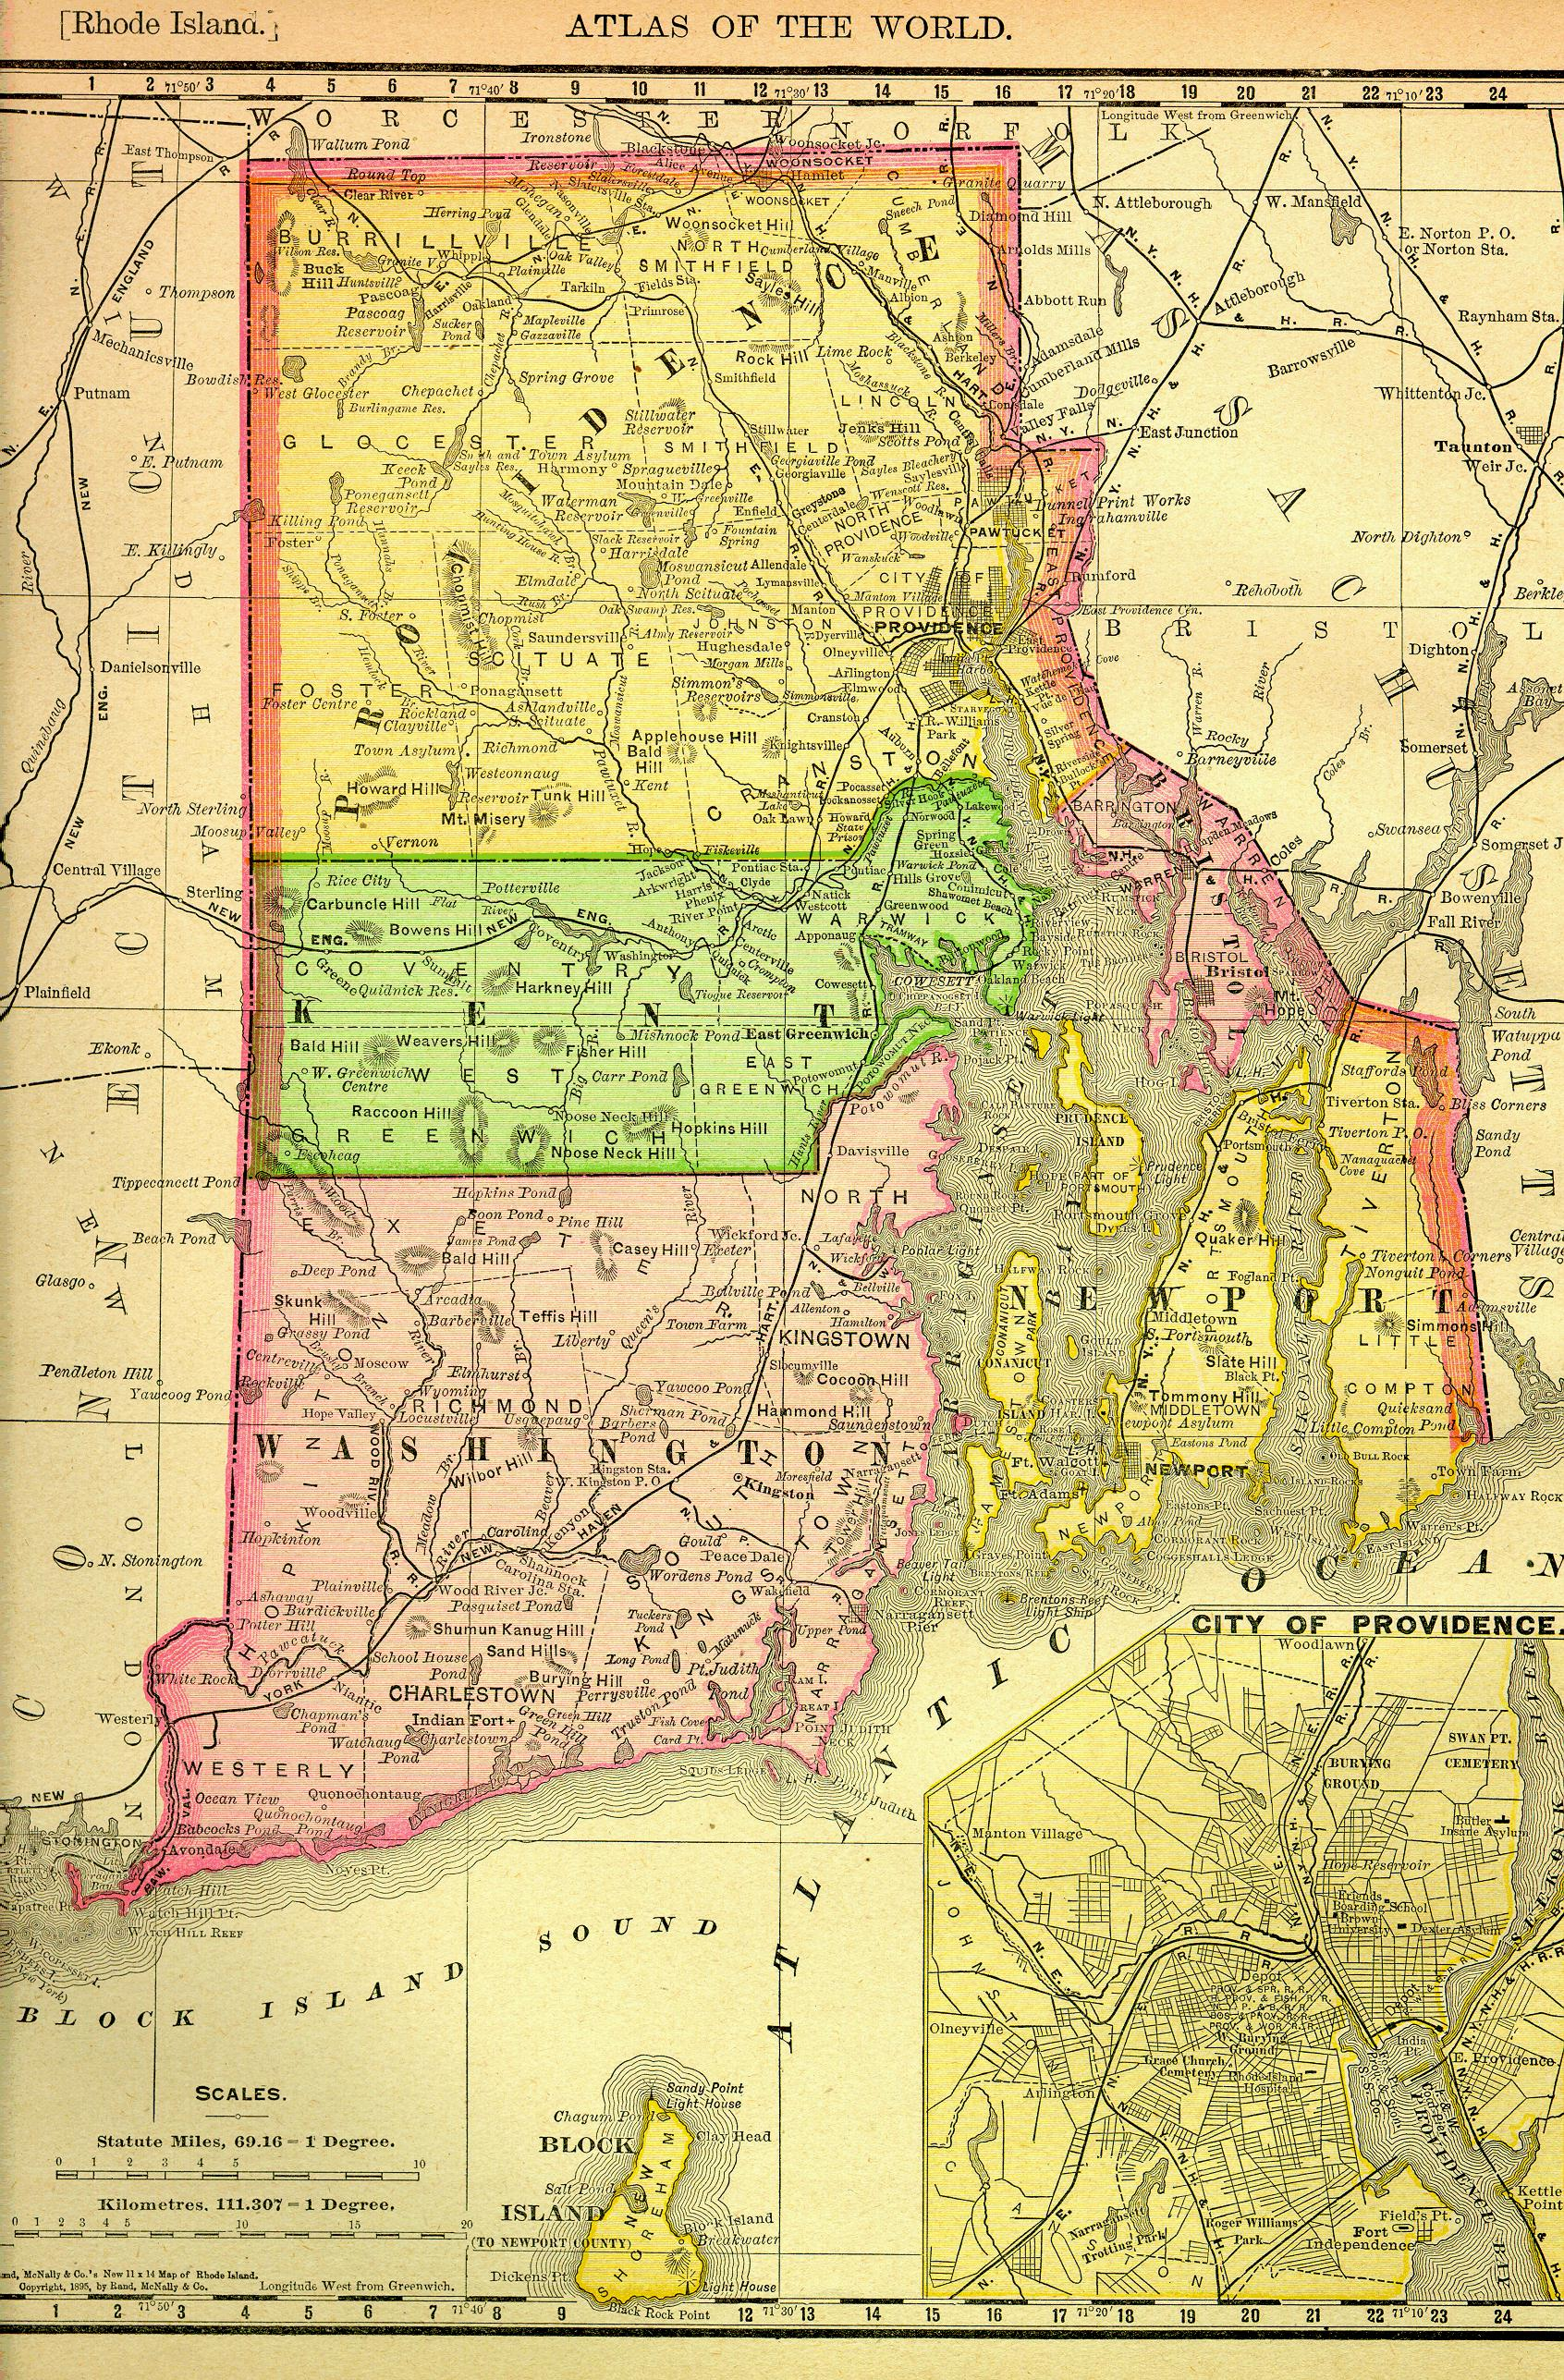 Download this Map Rhode Island picture